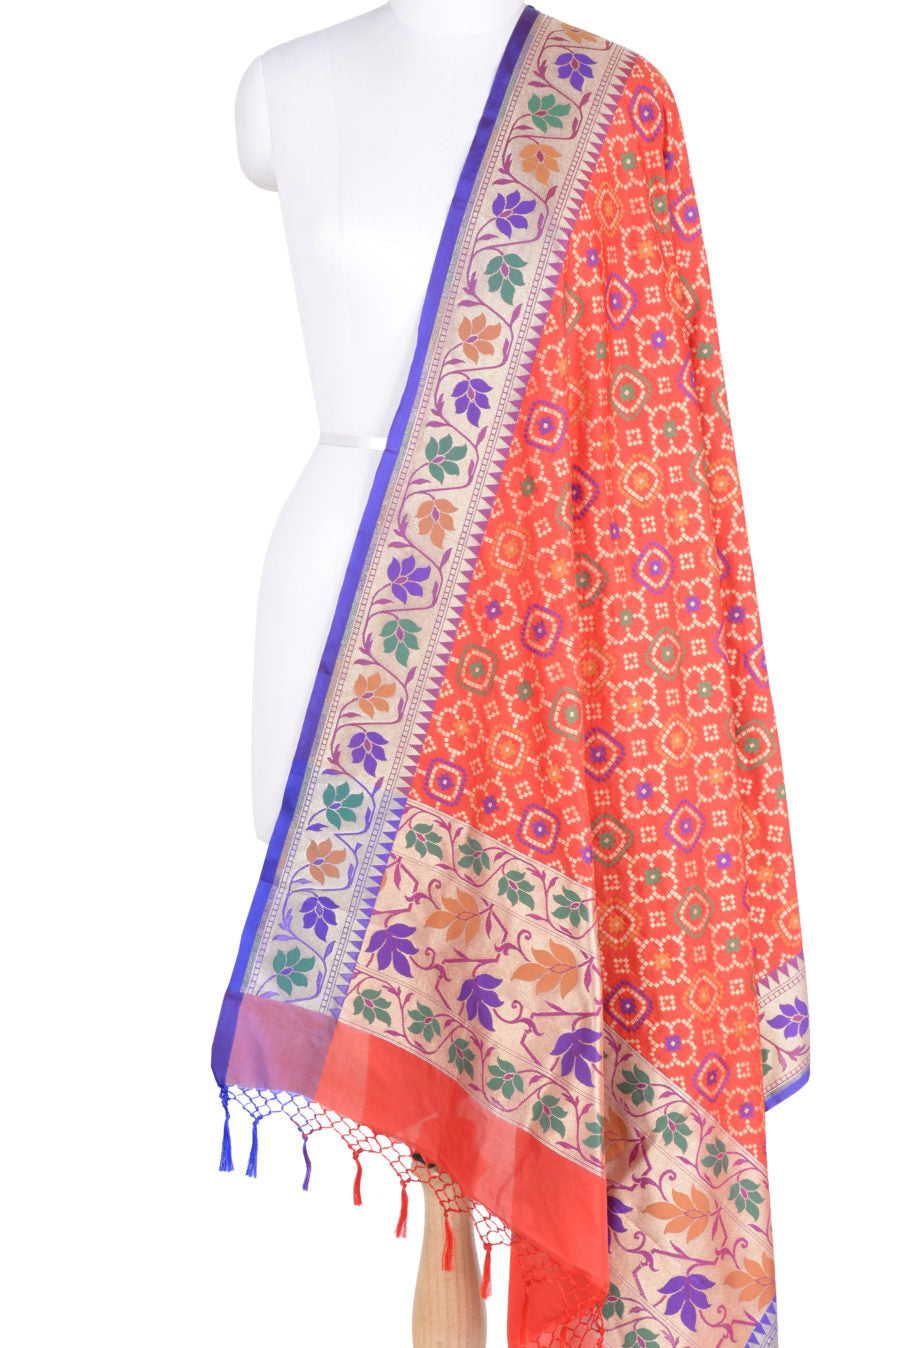 Red Banarasi dupatta with abstract and floral design (1) Main